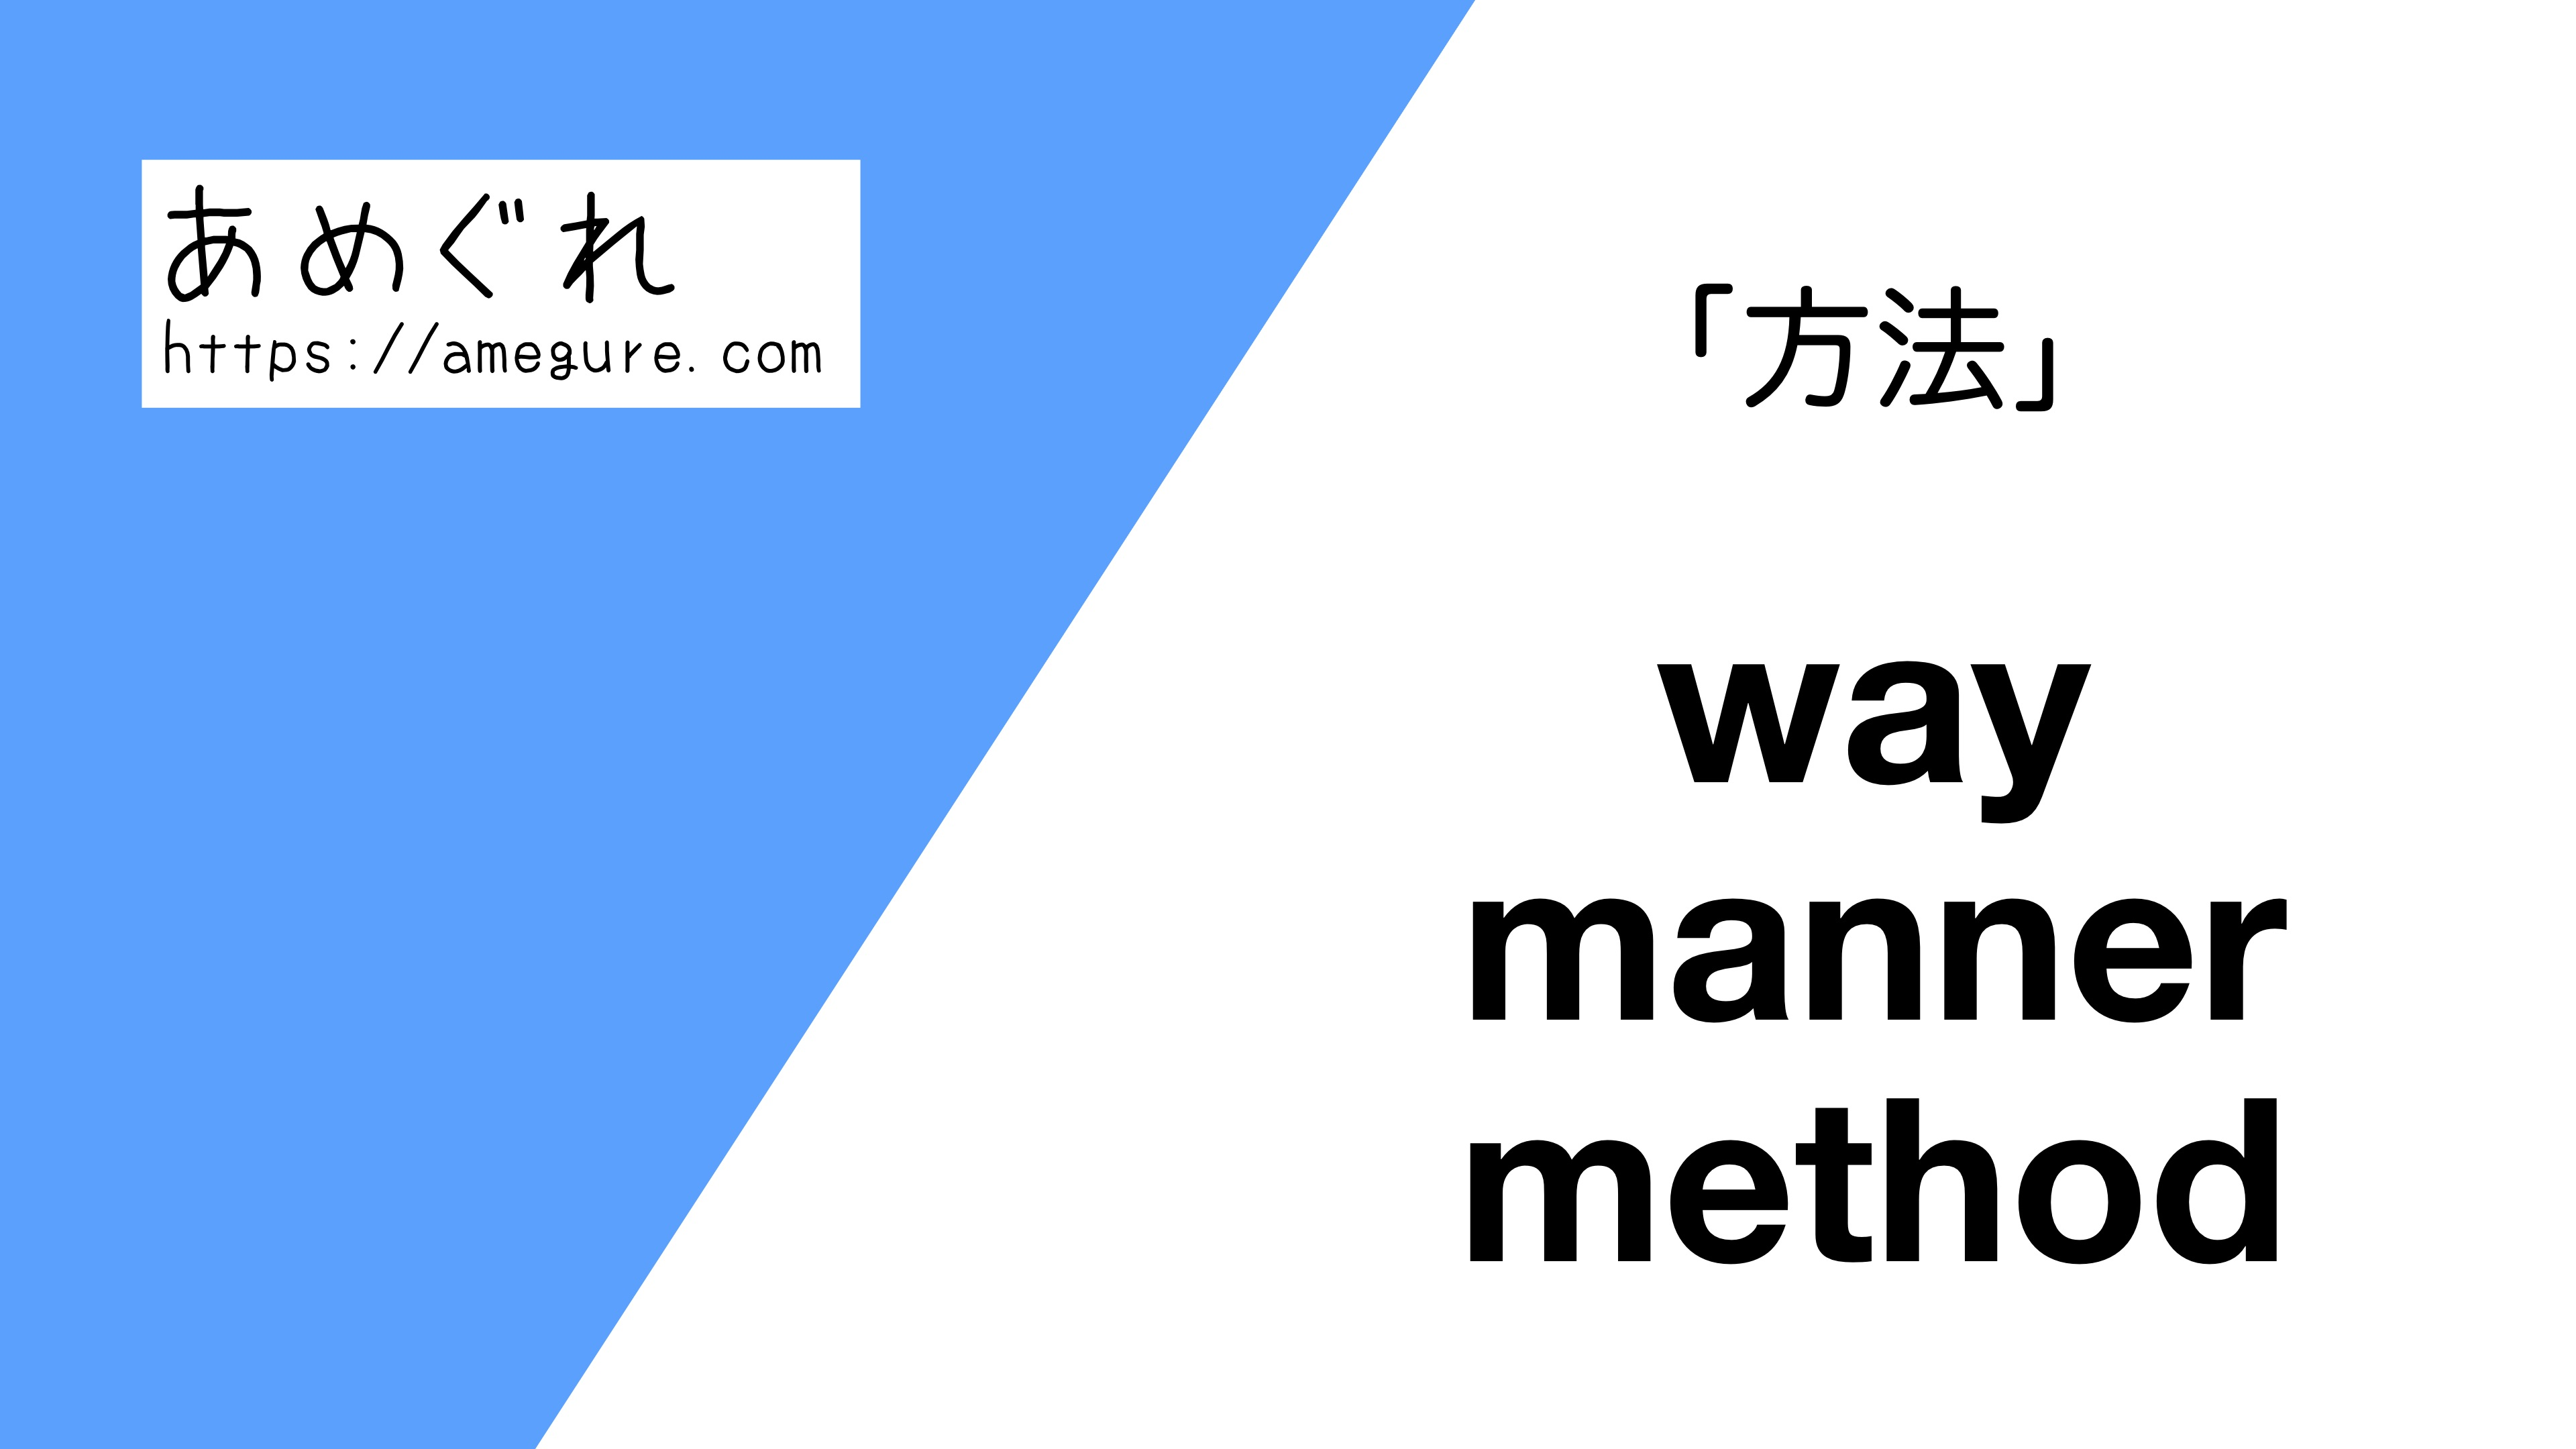 way-manner-method違い